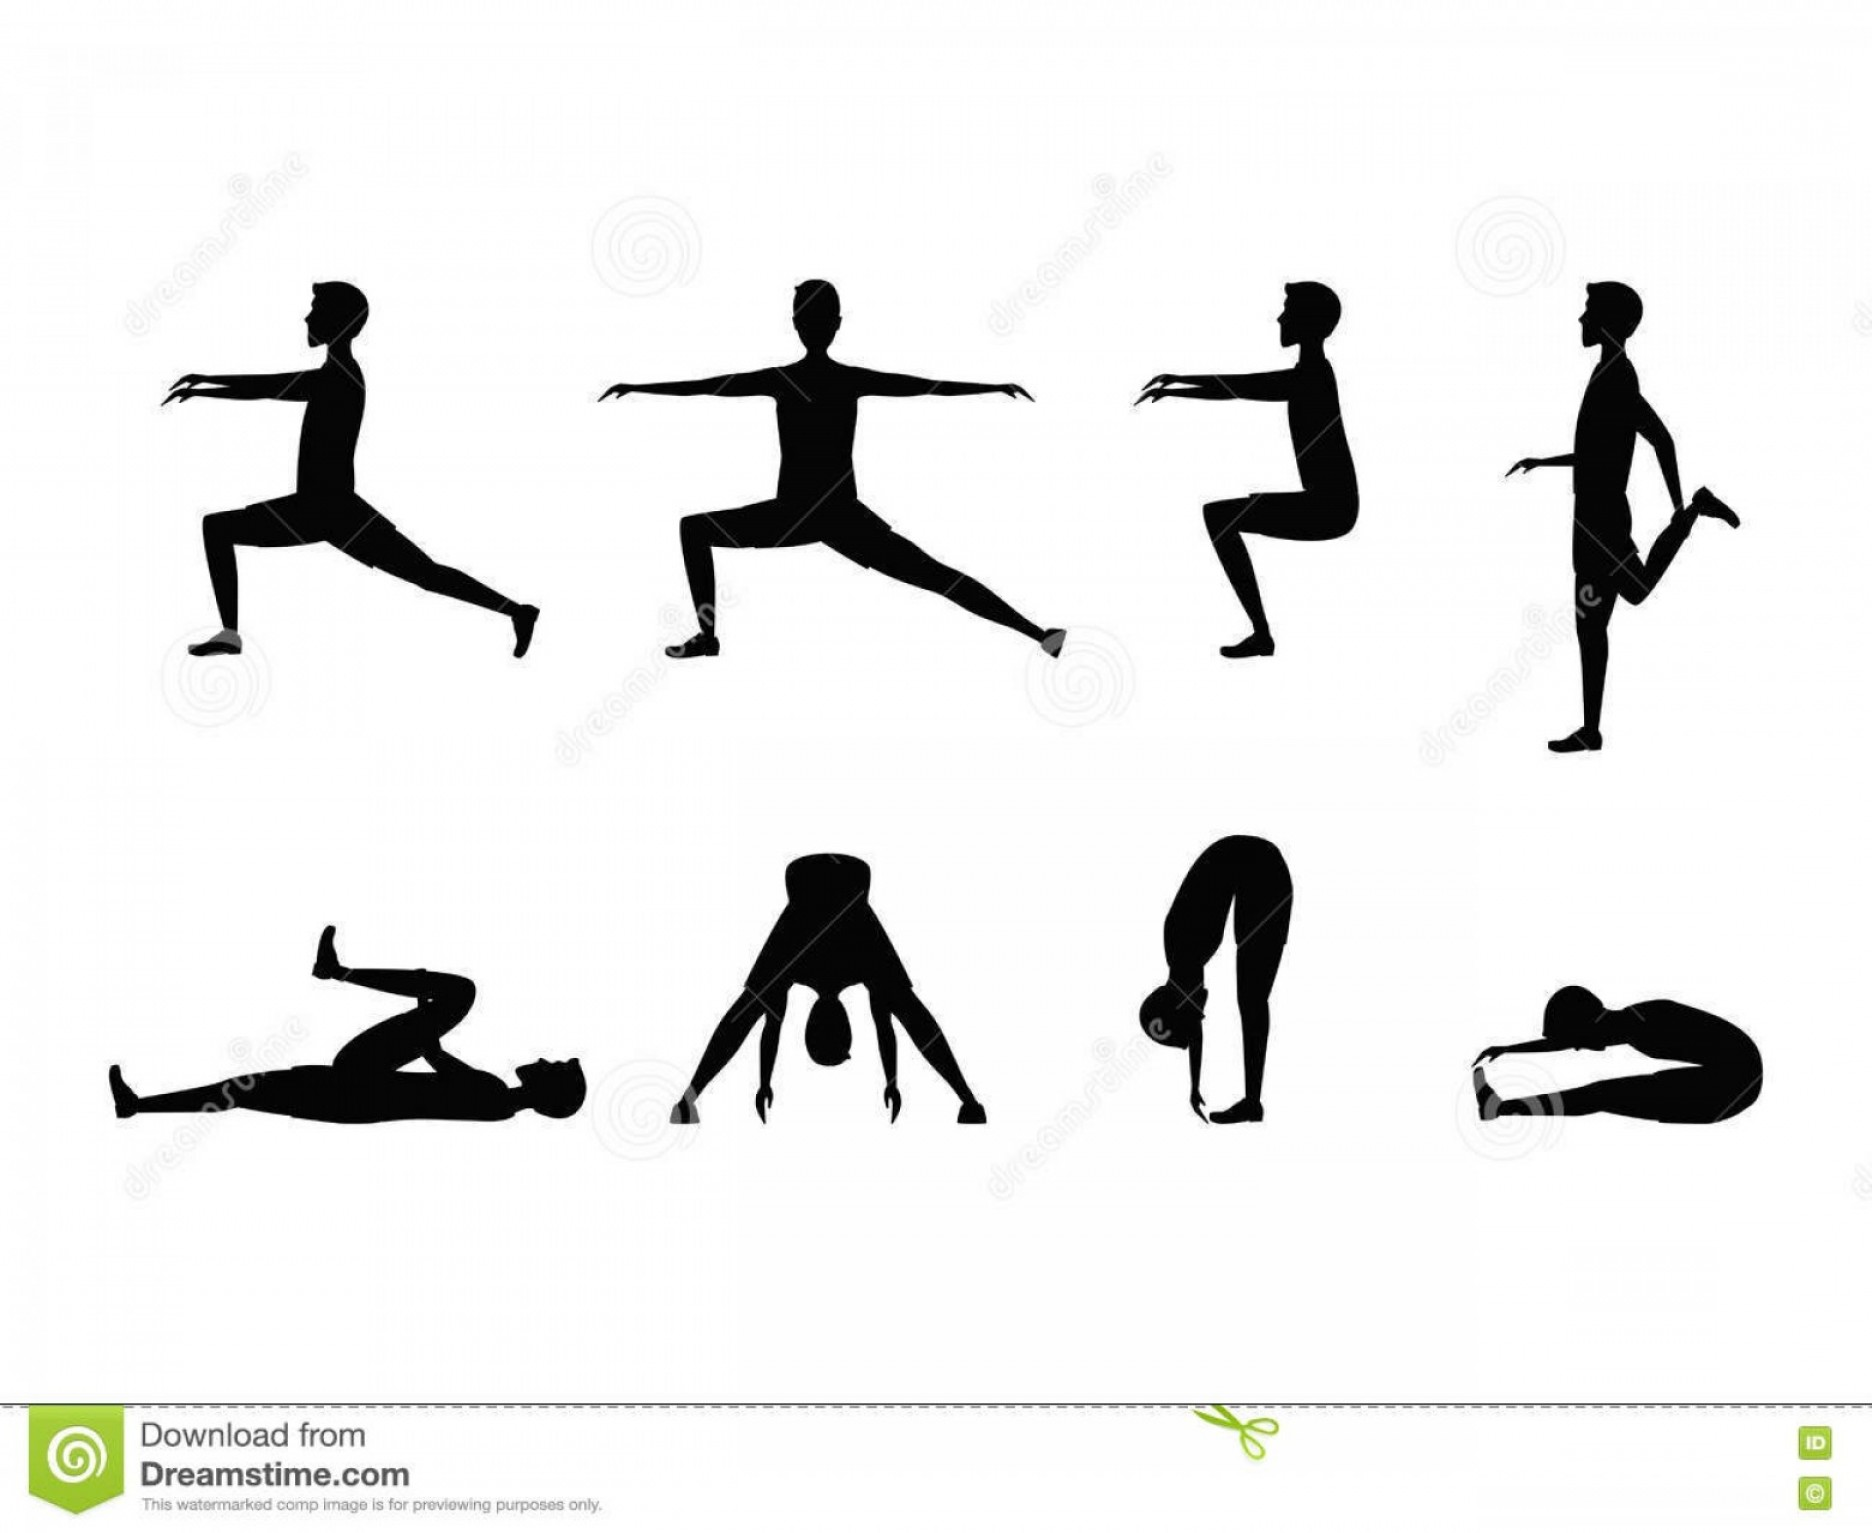 Man Vector Exercise: Stock Illustration Stretching Exercise Set Silhouette Man Vector Sports Fitness Health Illustration Image